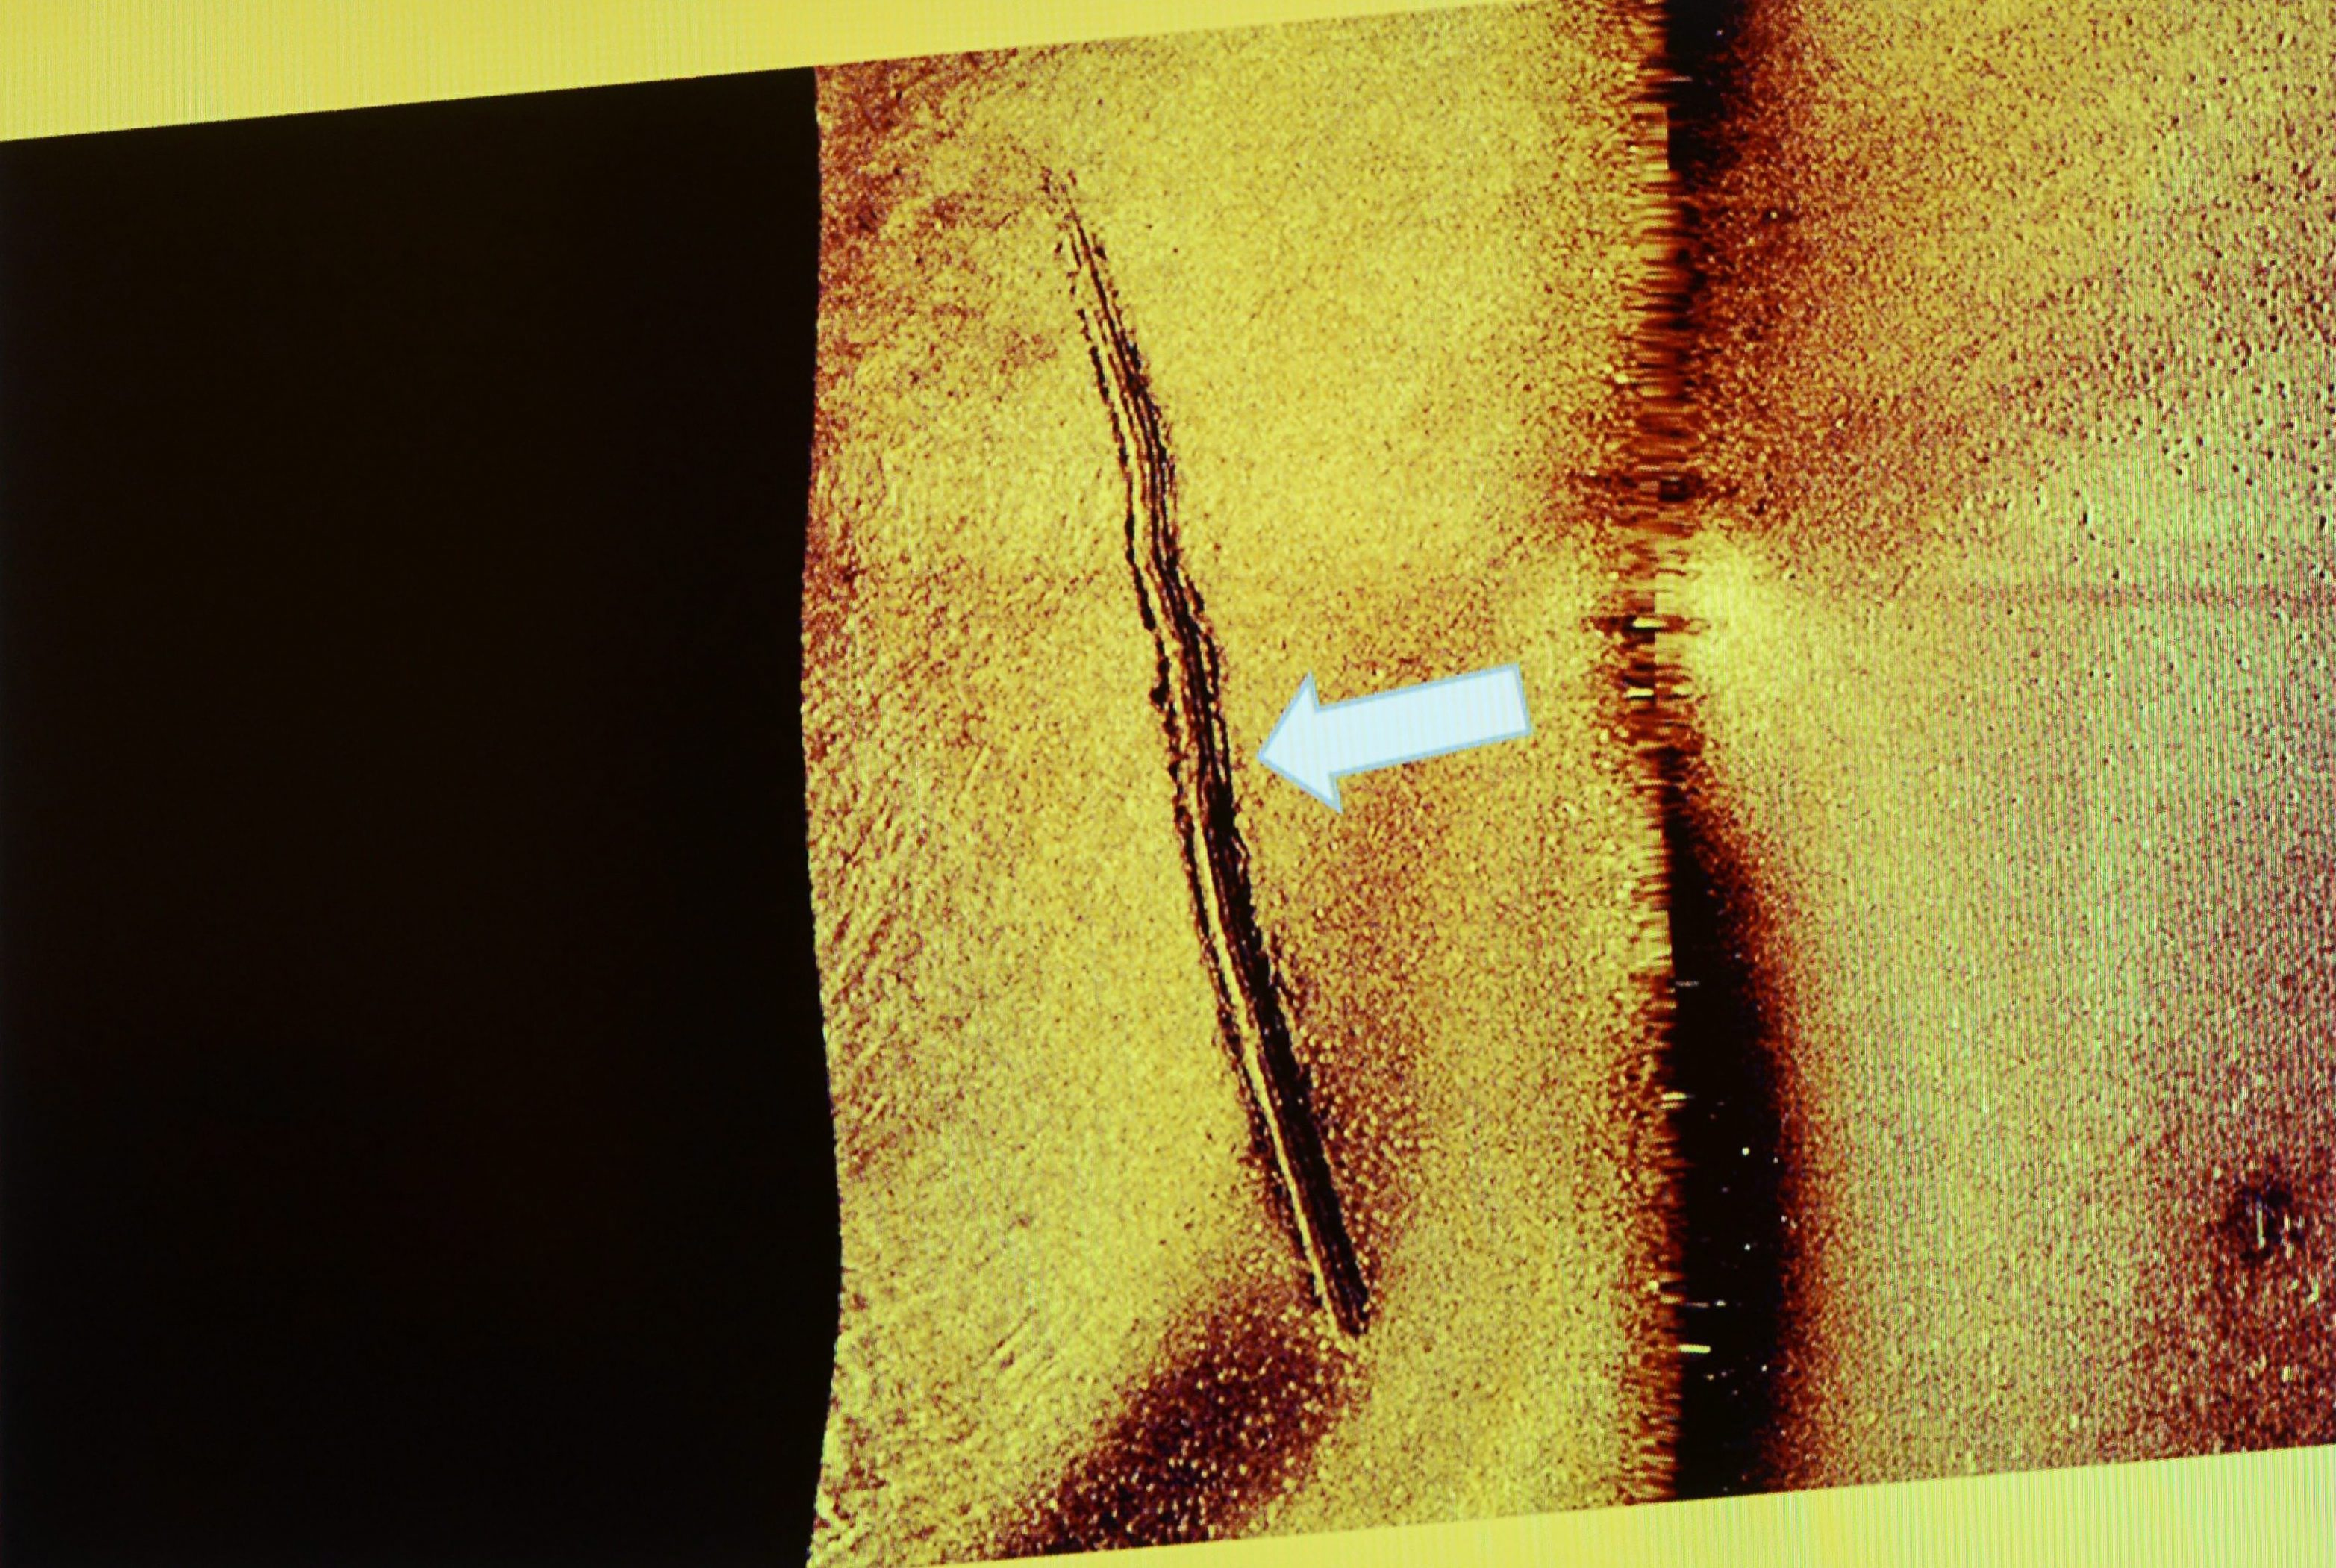 A photo of a sonar image made available by the Swedish military which they say shows sub-sea tracks left behind by a mini-submarine. (Swedish Armed Forces/AP)